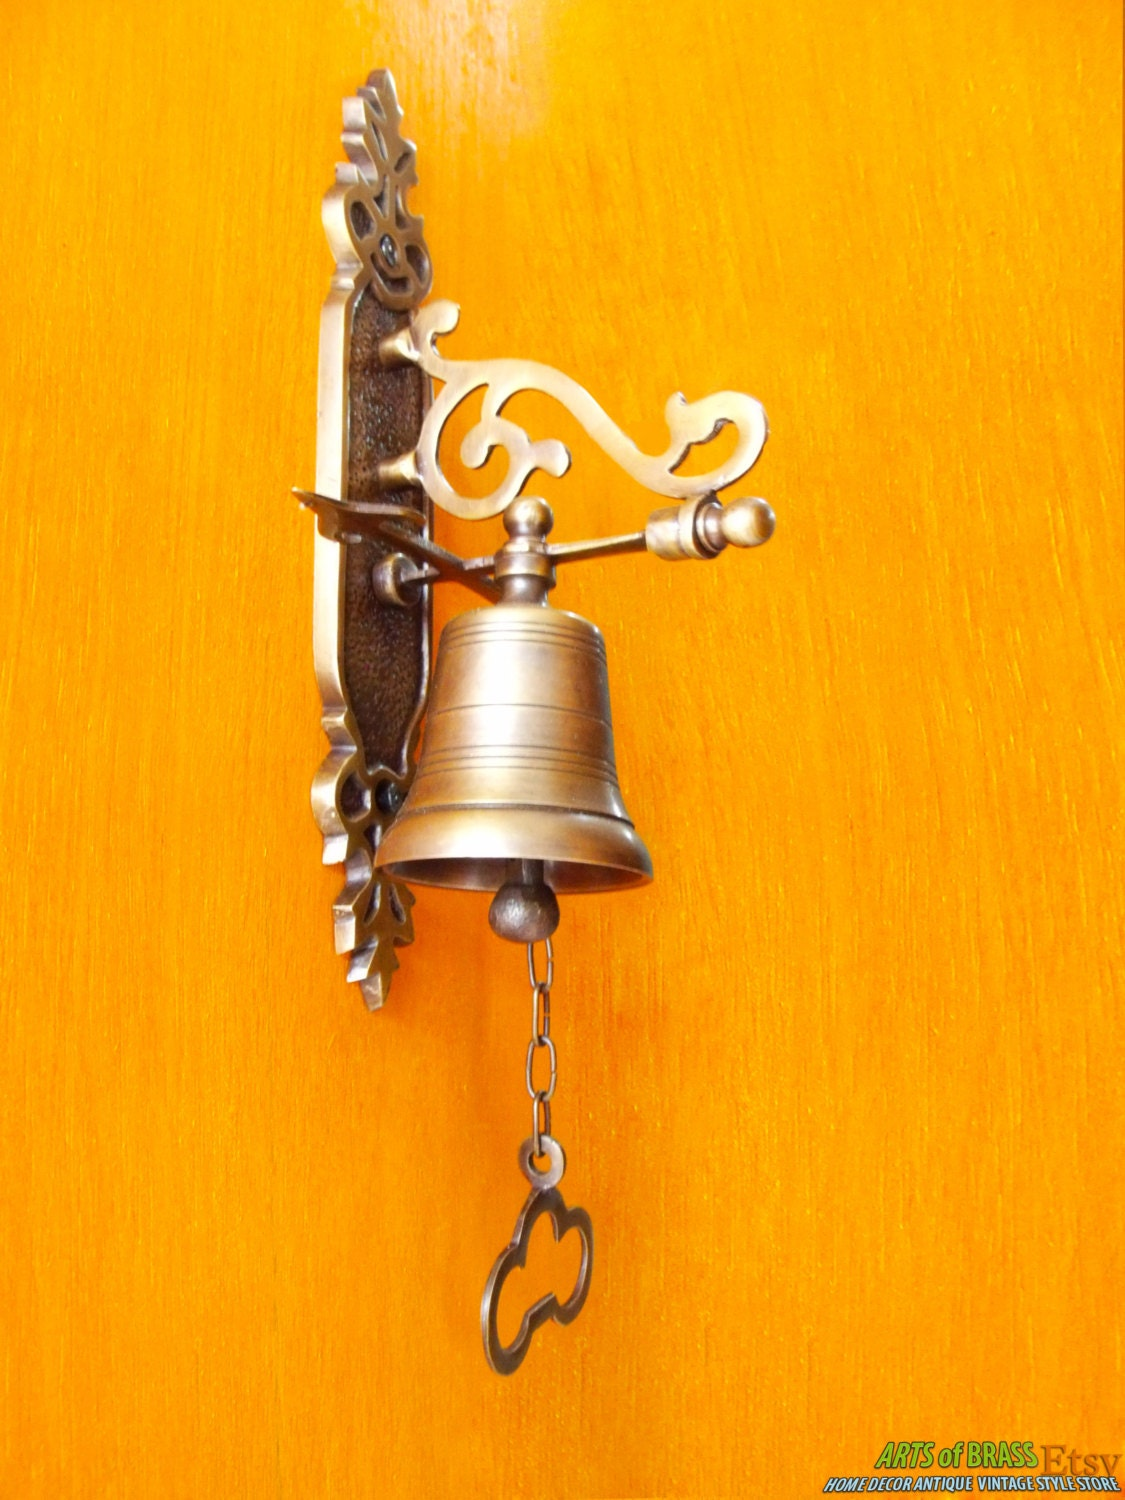 🔎zoom - 8.2 Inches Tall Vintage Antique Solid Brass Gate Front